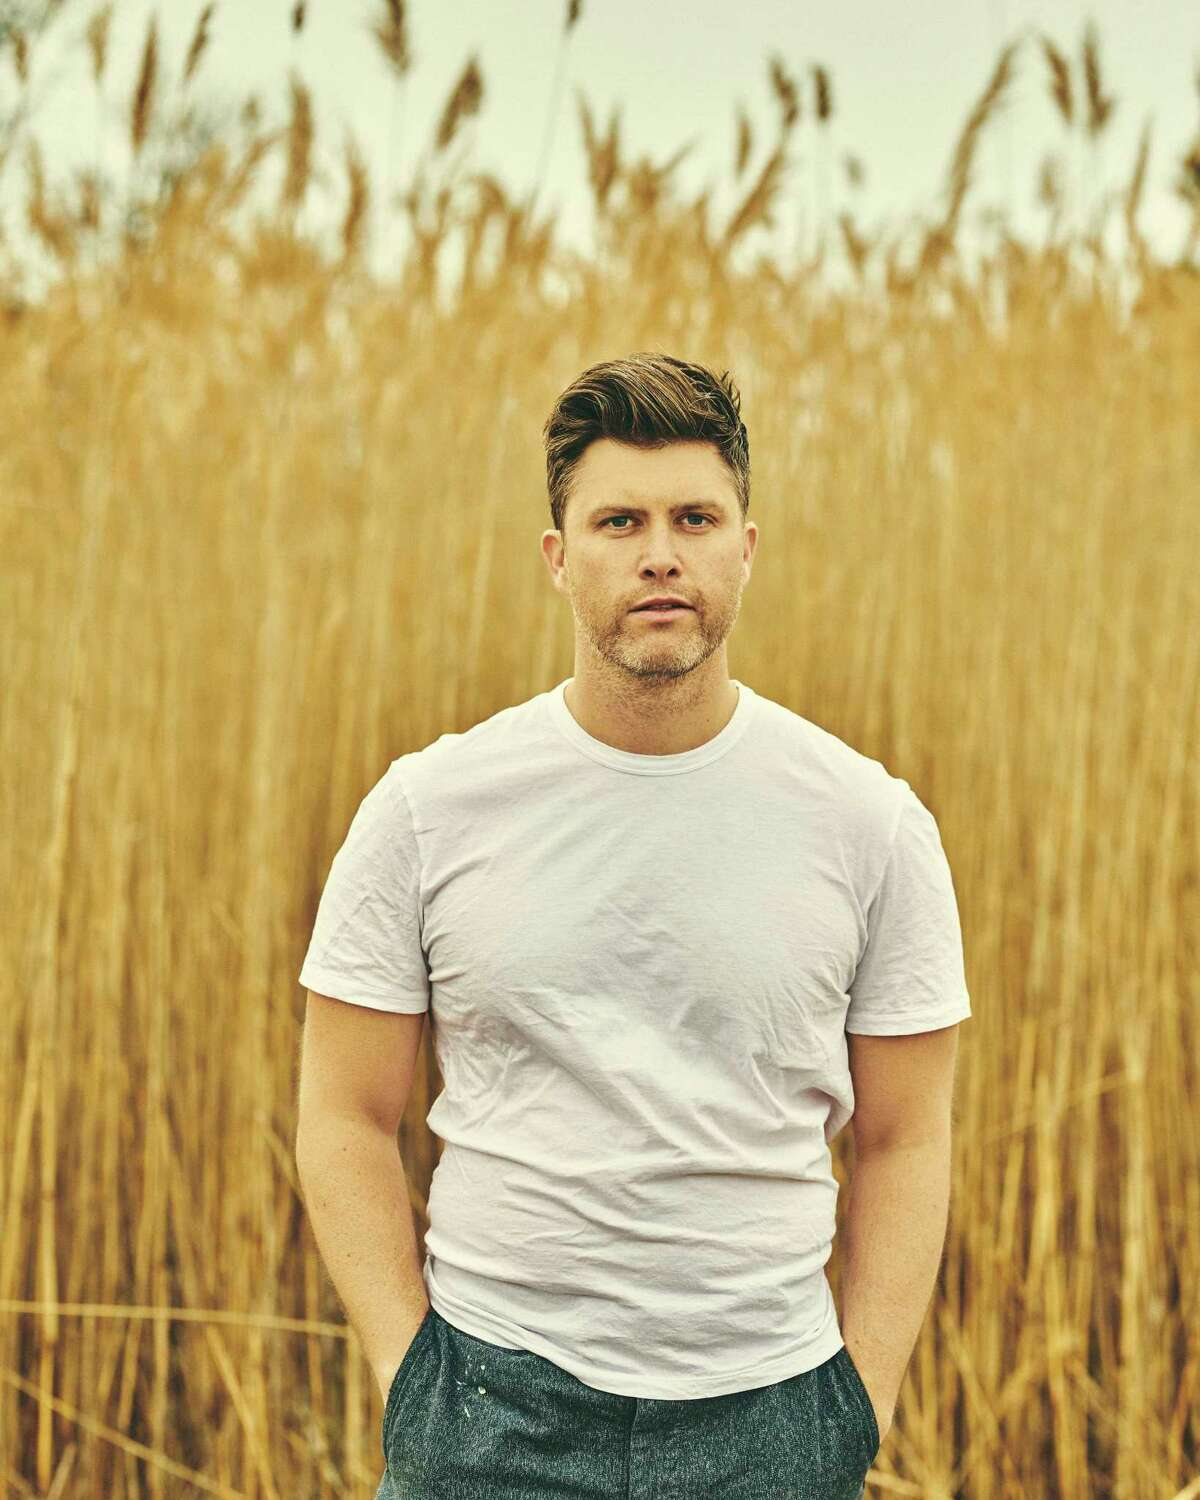 The a€œSaturday Night Livea€ star Colin Jost in Montauk, N.Y., March 18, 2020. a€œIa€™m not really ever looking for sympathy from anybody,a€ said Jost, who has a memoir coming out on July 14. a€œIf people hate me, I understand it. I also hate myself sometimes.a€ (Bryan Derballa/The New York Times)